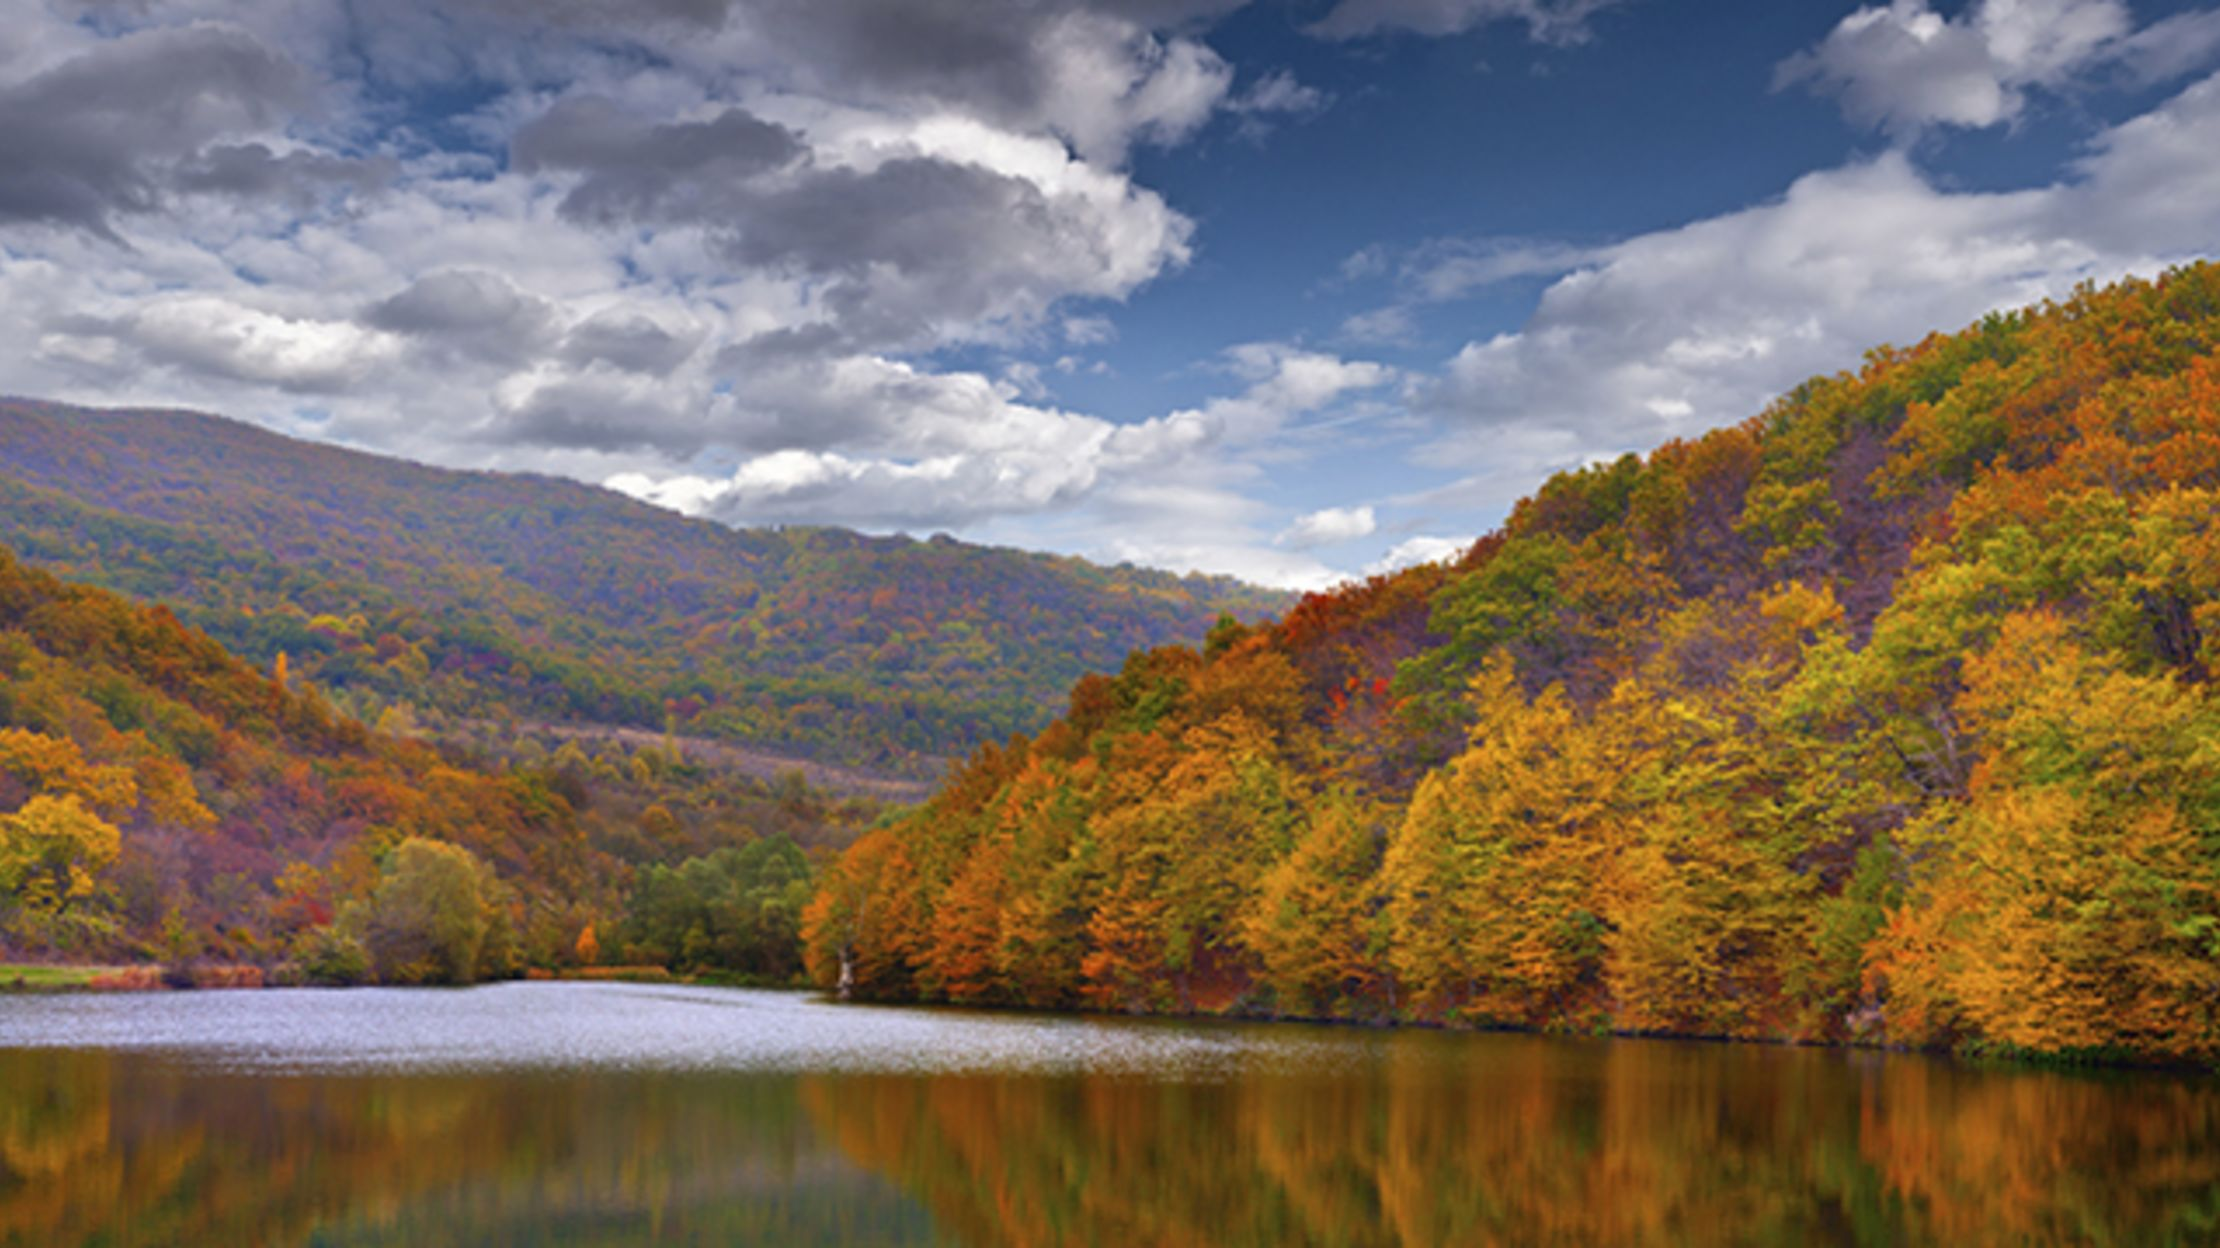 Fall In The Mountains Wallpaper 9 Trees With Spectacular Fall Foliage Mental Floss